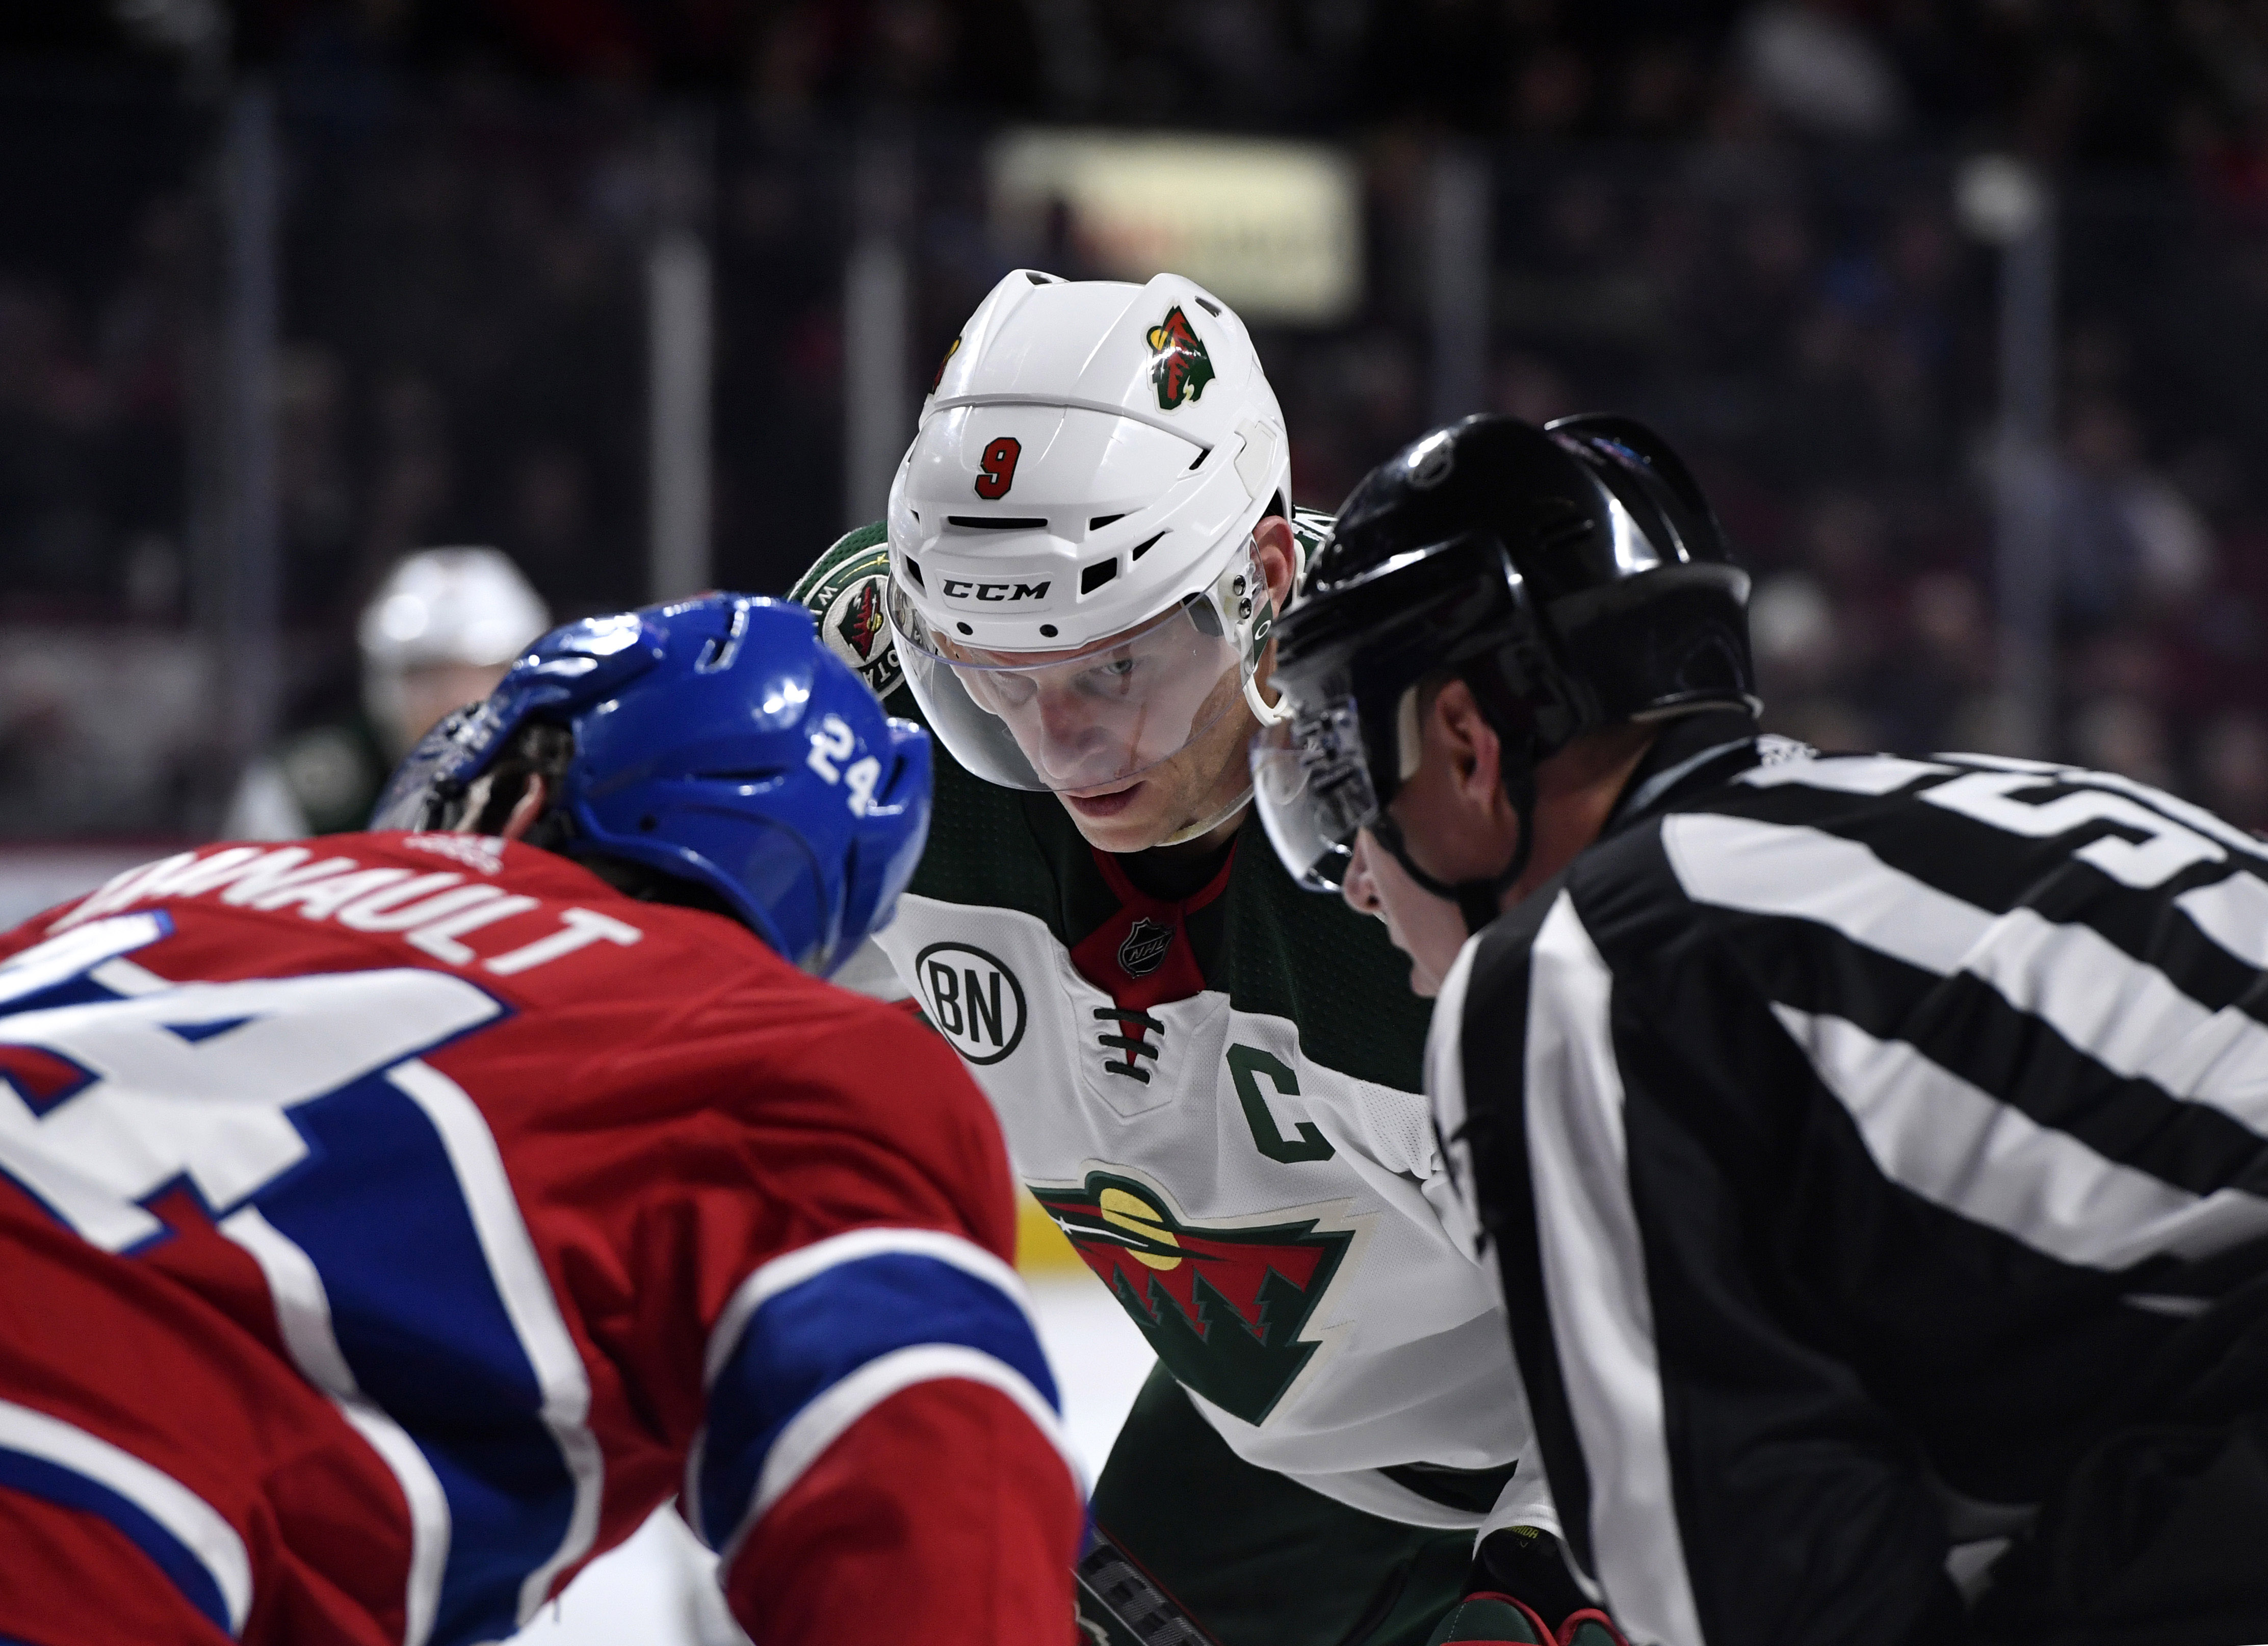 Game Preview: Minnesota Wild vs. Montreal Canadiens 10/17/19 @ 6:00PM CST at Bell Centre